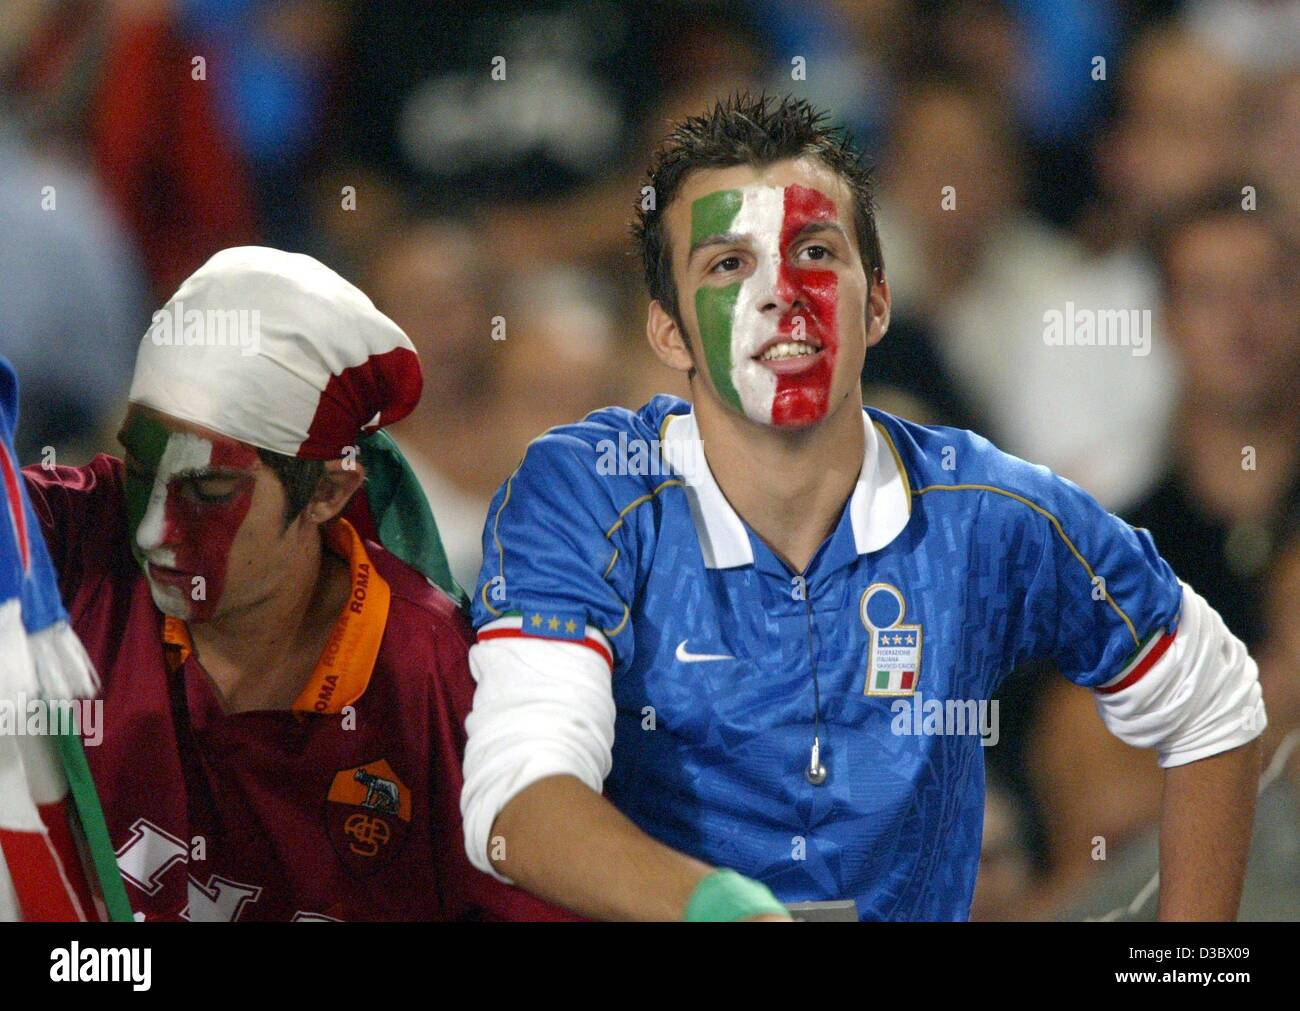 593f2648817 (dpa) - Italian soccer fans have painted their face in their national  colours and